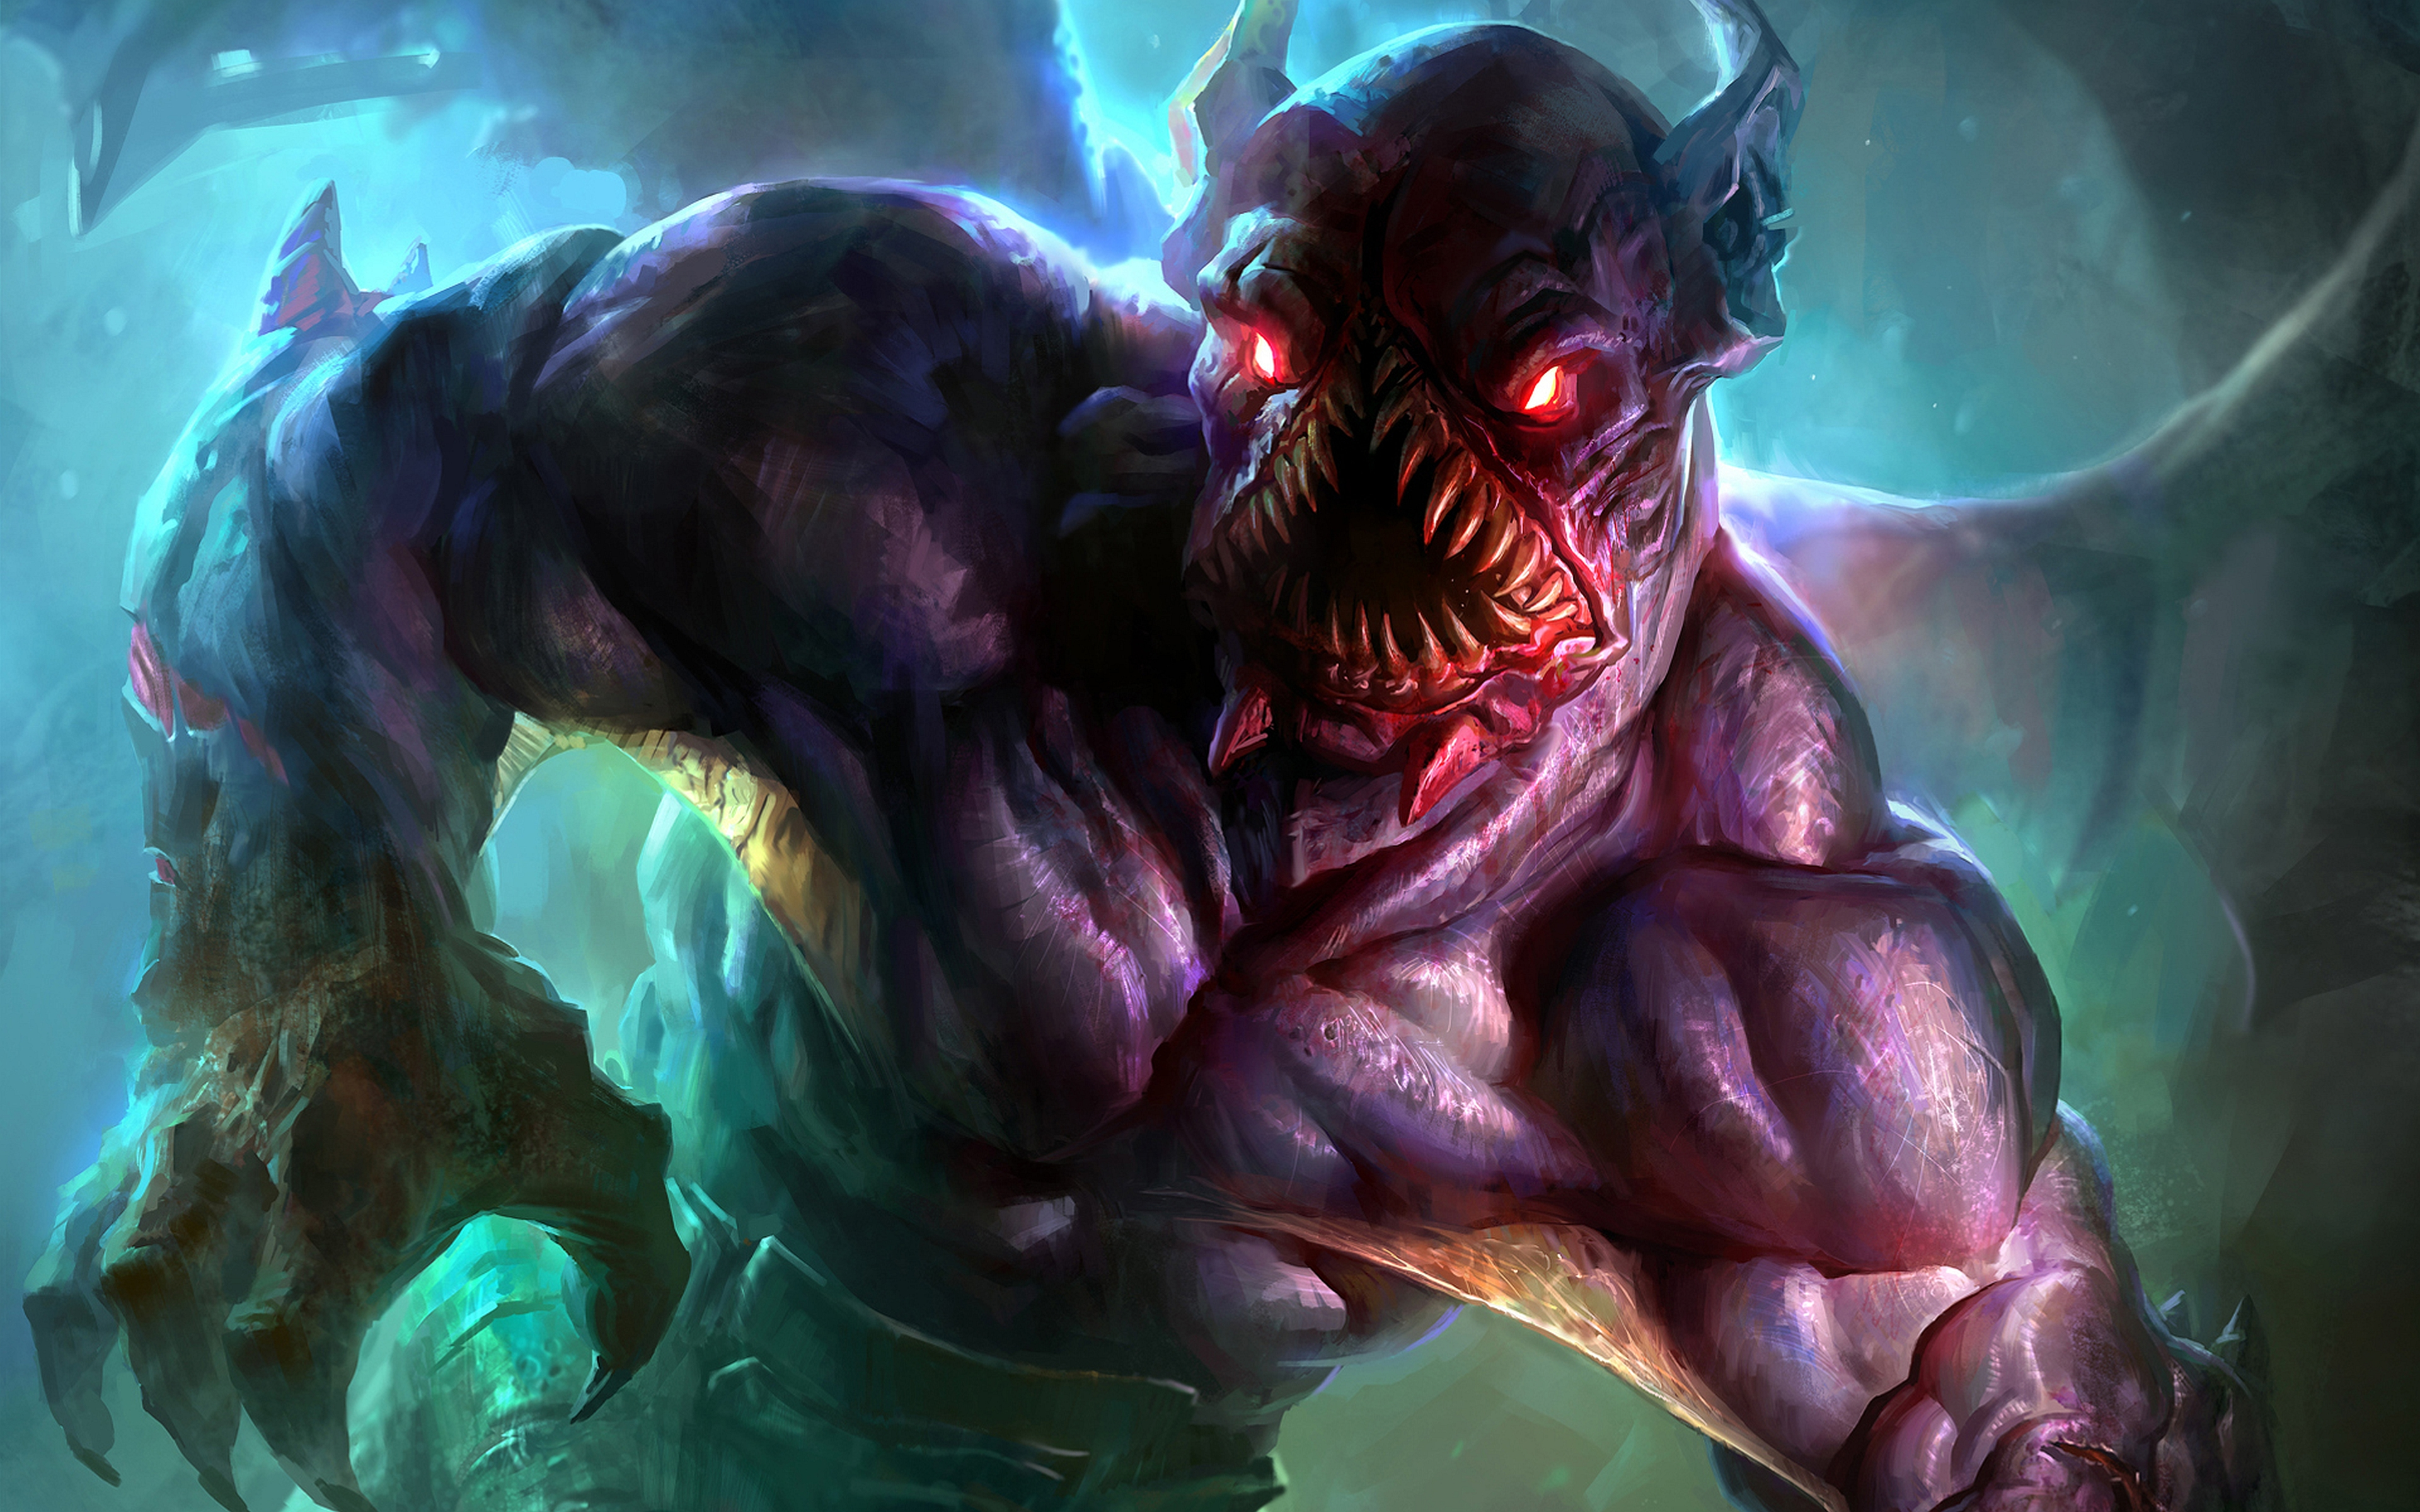 2560x1440 dota 2 1440p resolution hd 4k wallpapers images